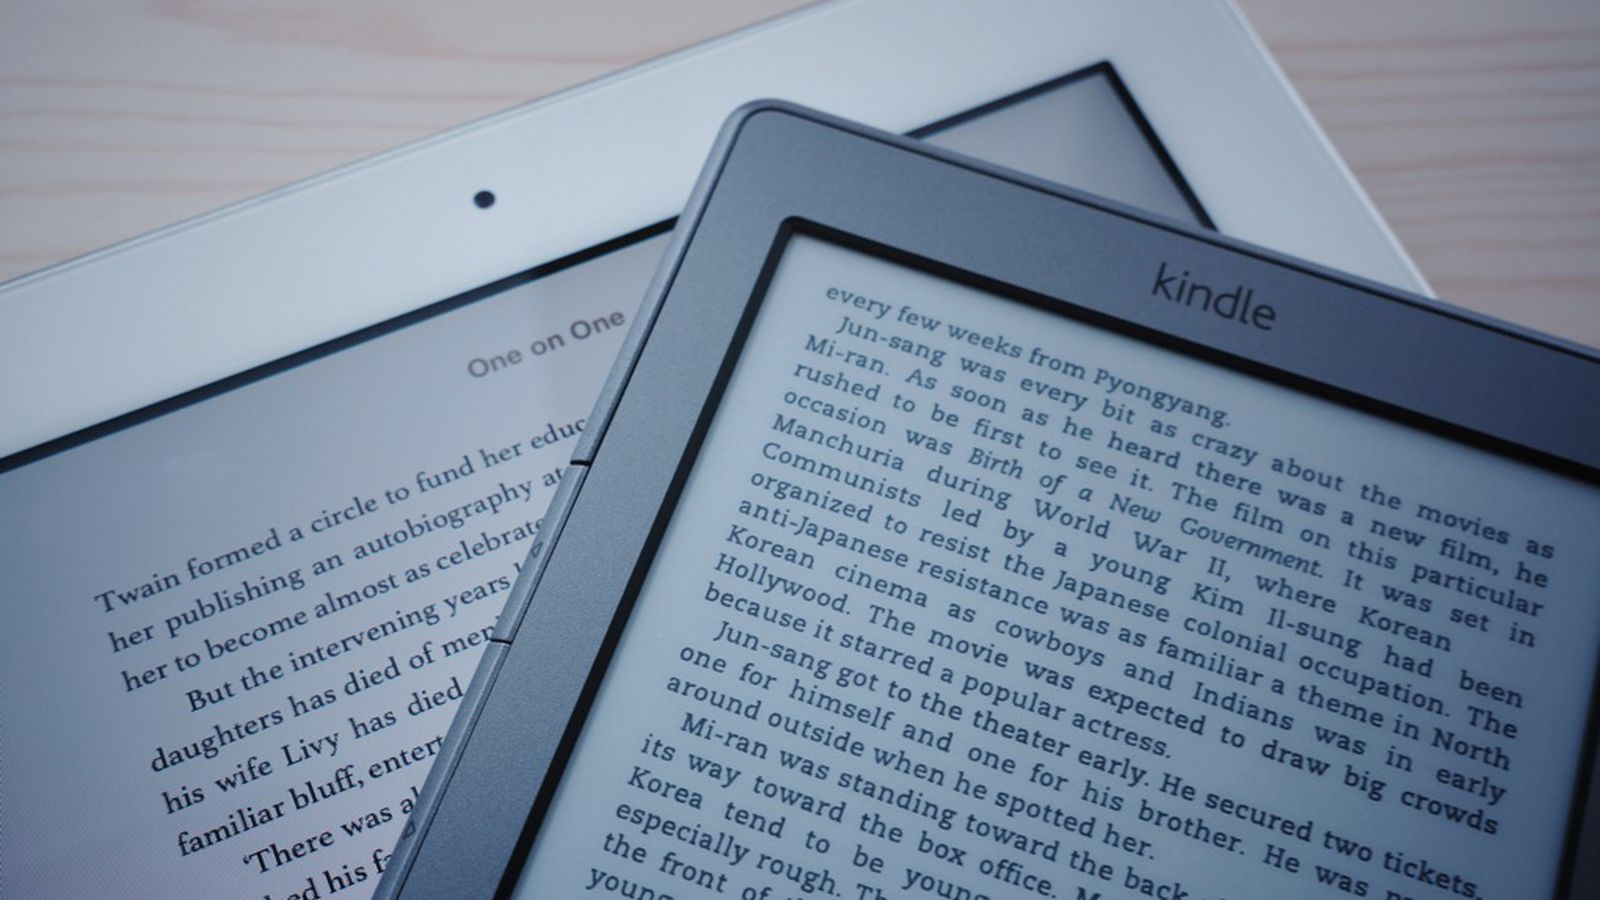 Kindleexclusive Ebooks Have Been Downloaded 100 Million Times  The Verge